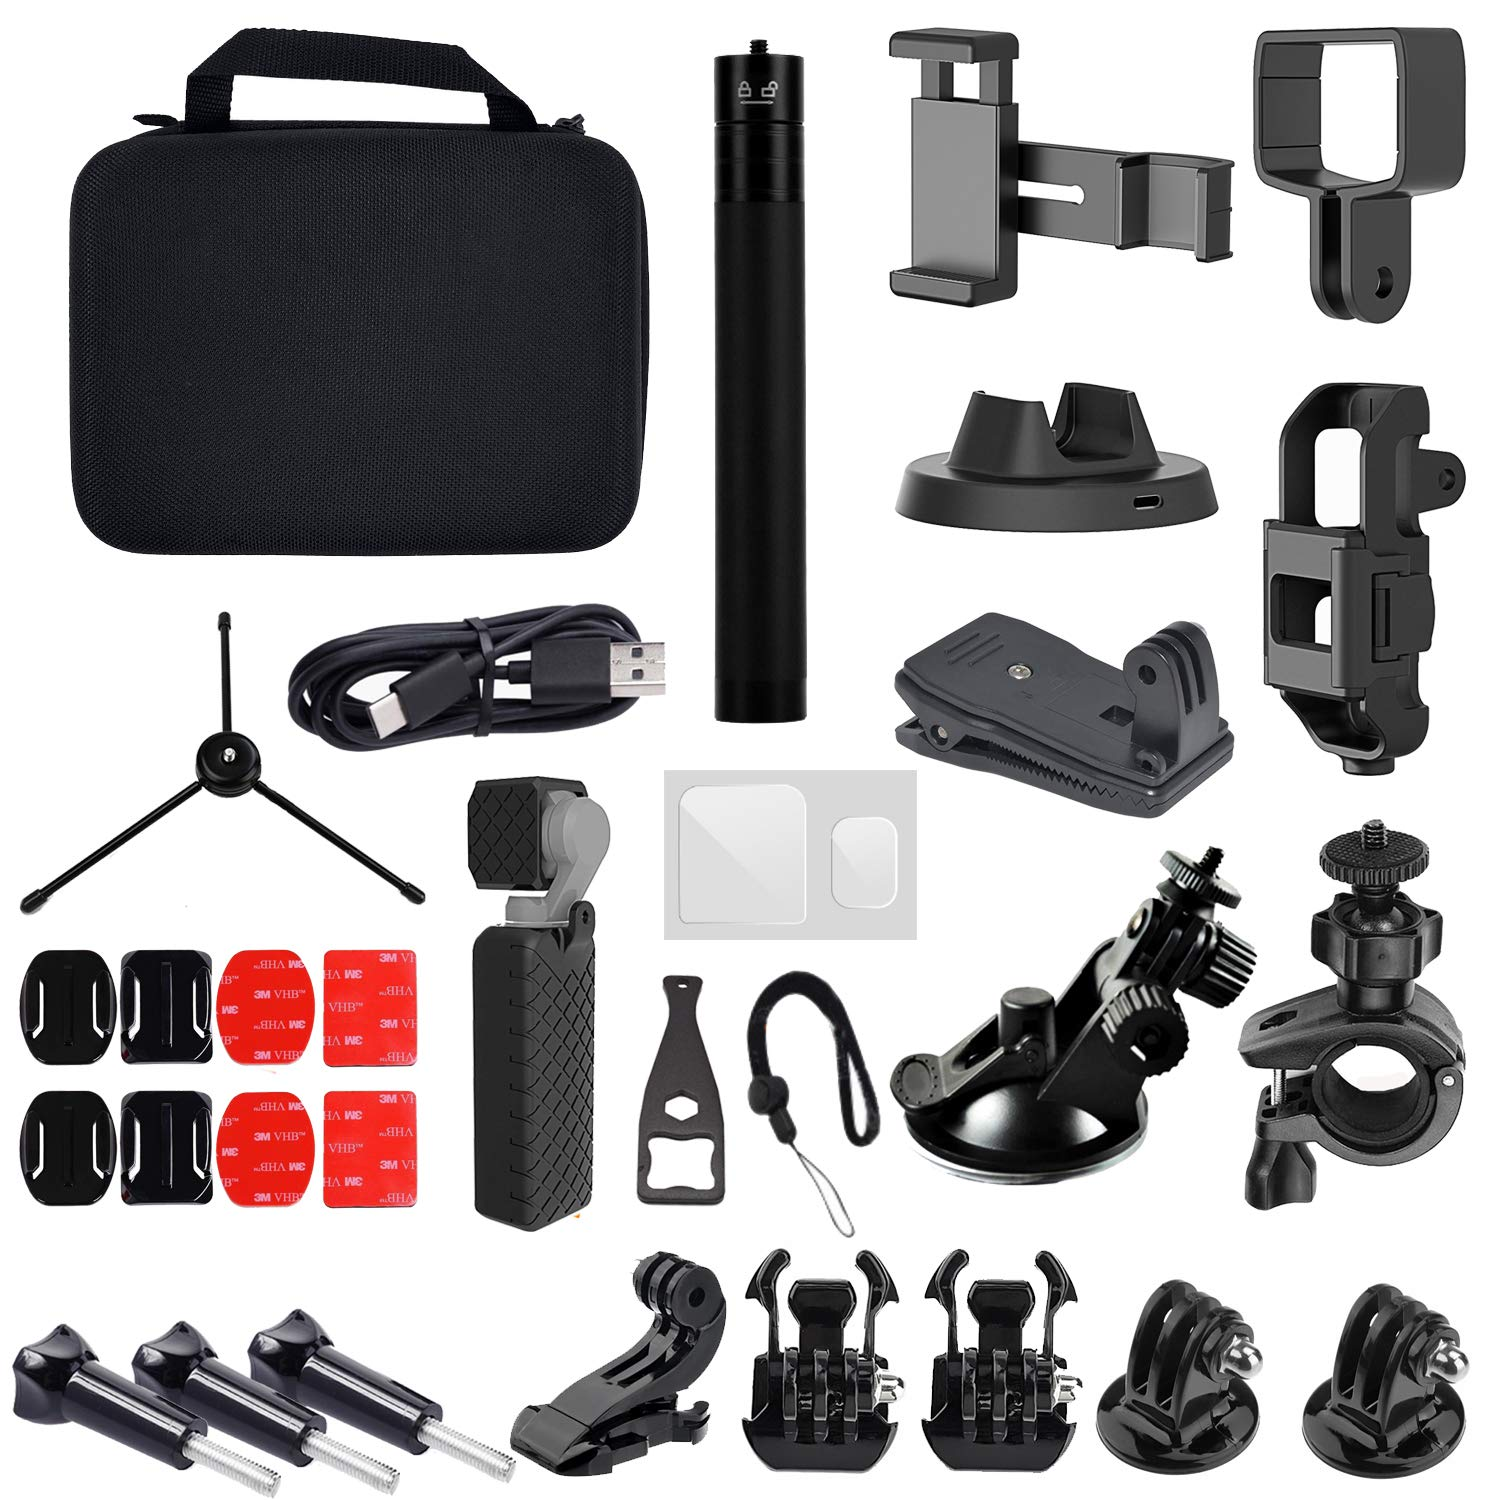 34-in-1 Expansion Accessories Kit for DJI Osmo Pocket, Selfie Stick,Tripod, Bracket,Adapter,Charging Base